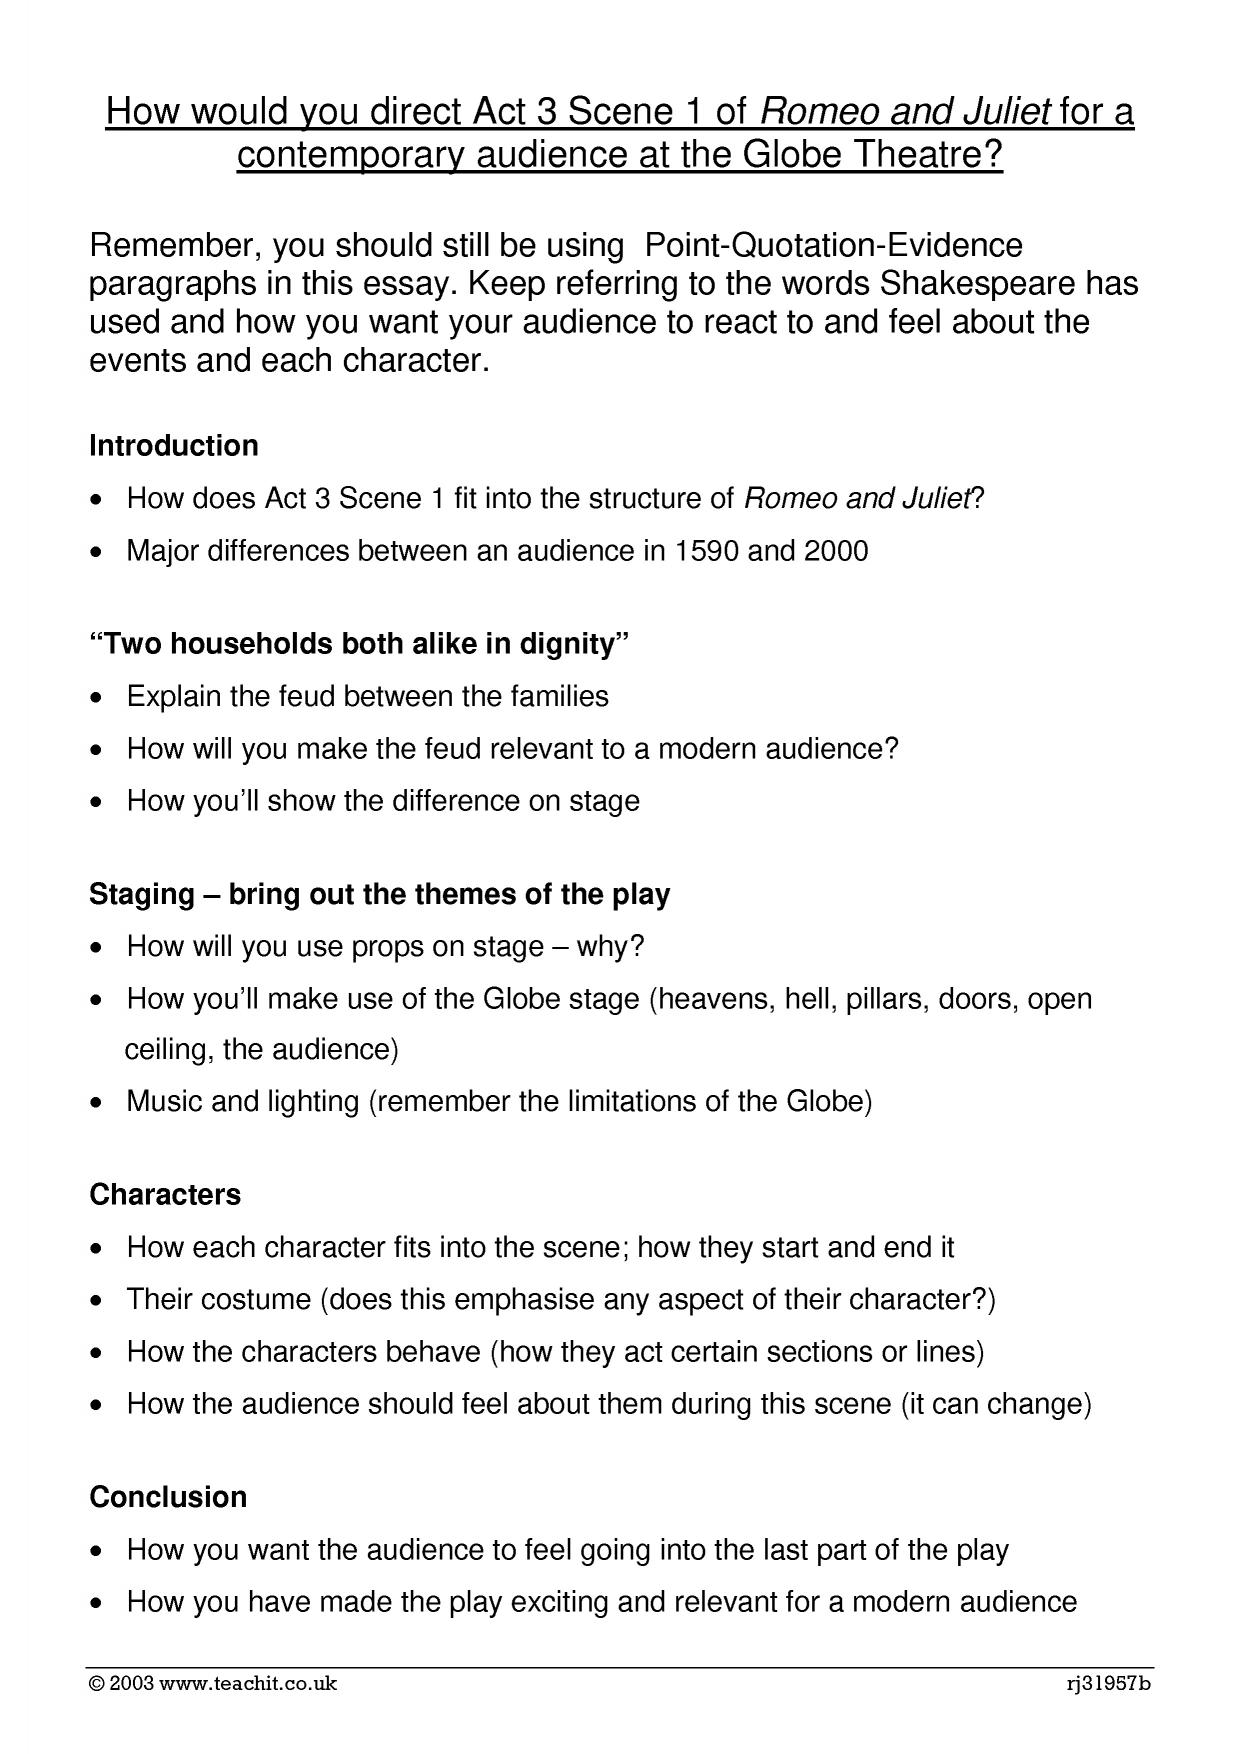 essay about romeo and juliet romeo and juliet essay plan act scene  romeo and juliet essay plan act scene romeo and juliet essay plan act 3 scene 1